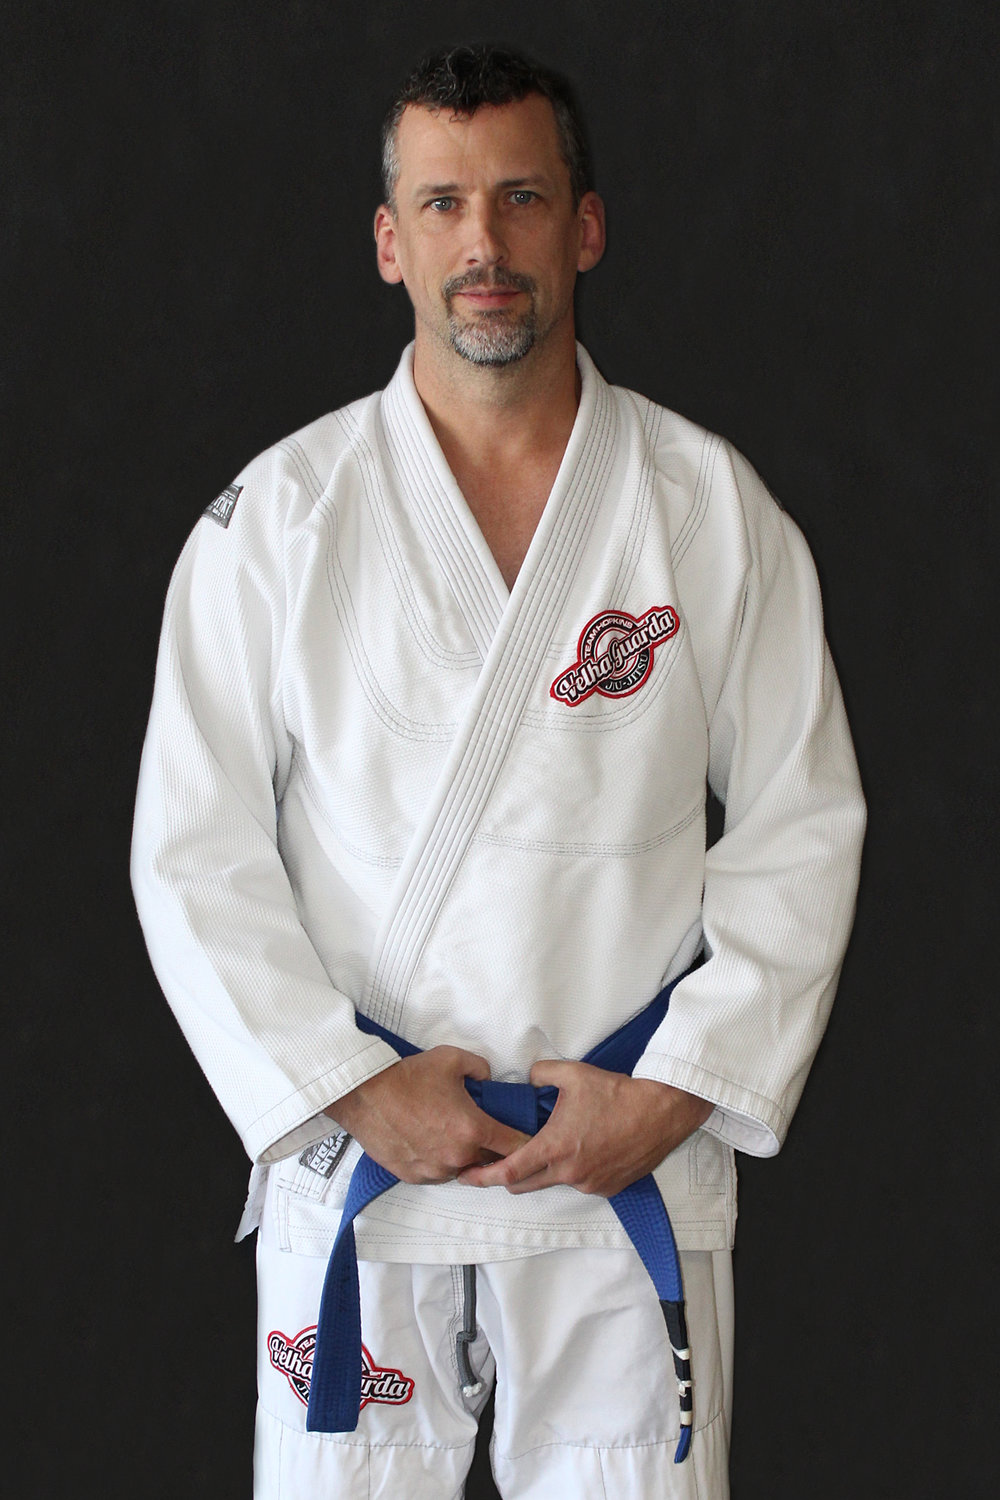 Randy Arendell - InstructorRandy started Jiu-Jitsu in September 2014 at the age of 44. Having been involved in other martial arts (Kung Fu, Tae Kwon Do and Kickboxing) in the past, he now solely trains Jiu-Jitsu and is committed to it for life. He has been married since 1996 and has three daughters that he is passionate about and would rather be with them than anyone else. He works as an Engineer for a technologycompany based out of Atlanta, GA, loves working in his woodshop and in his yard. He also thoroughly enjoys learning Jiu-Jitsu at every opportunity.